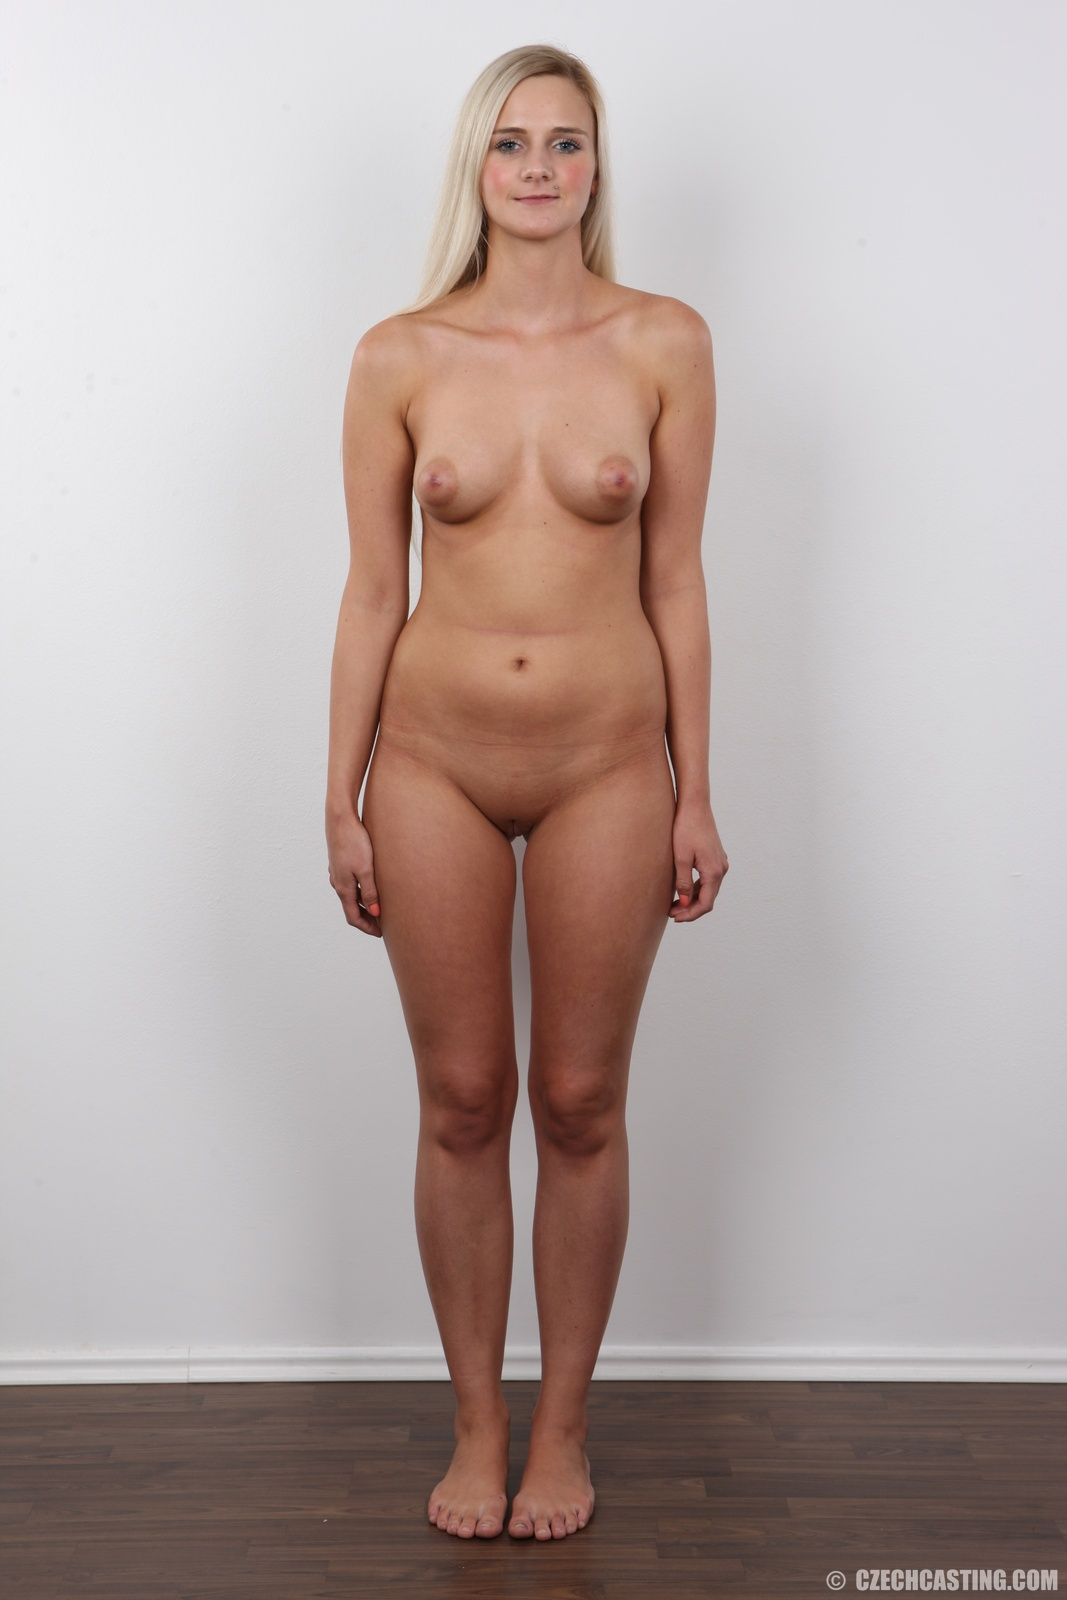 Criticising advise Nude girl auditions pics accept. opinion